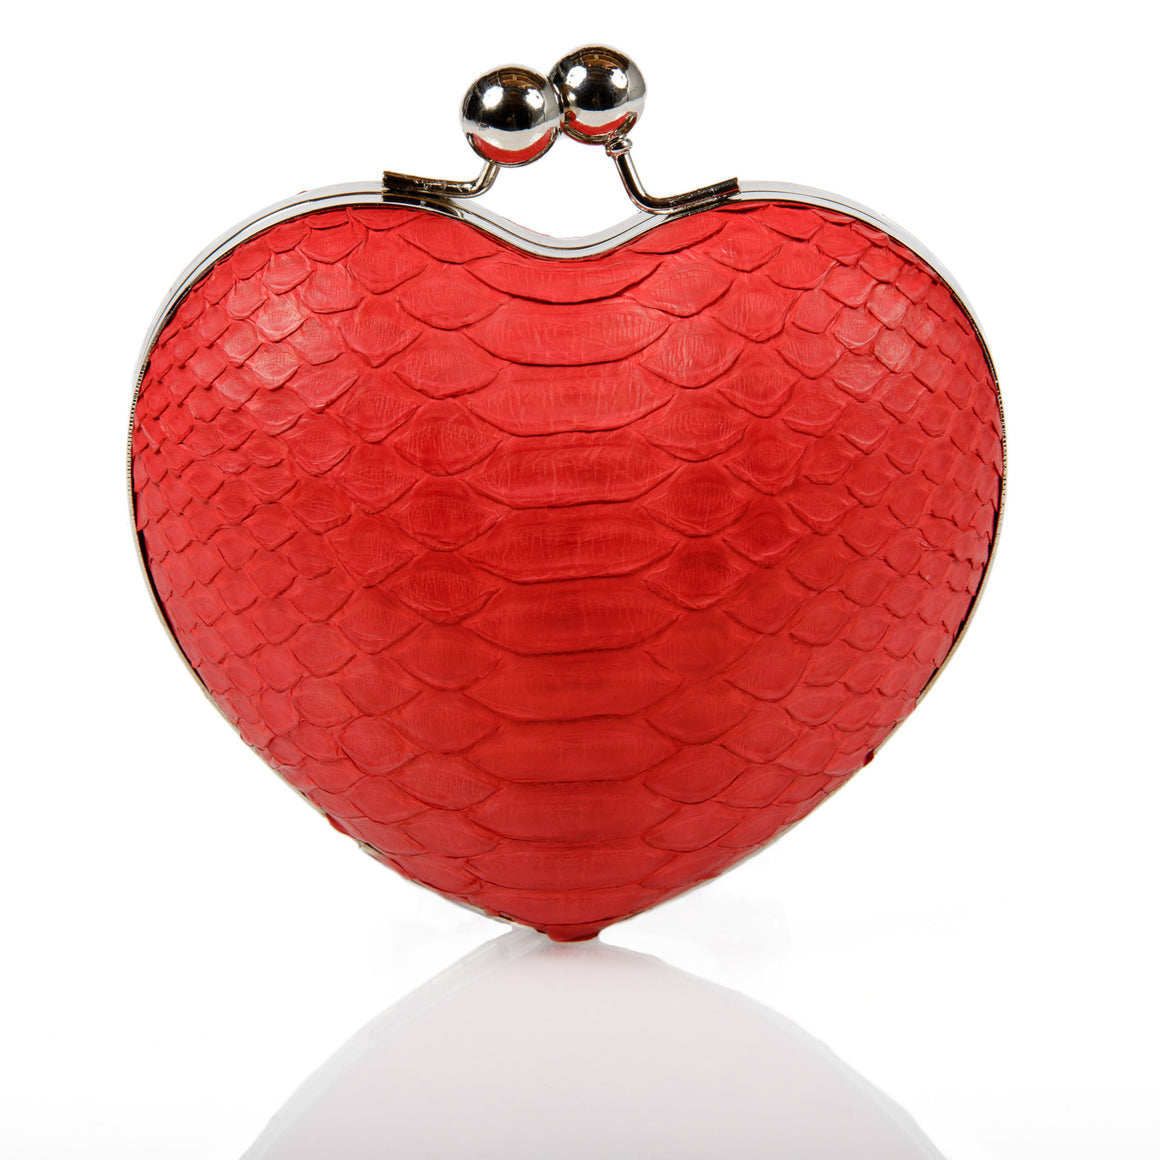 Red Heart Exotic Skin Minaudiere Clutch